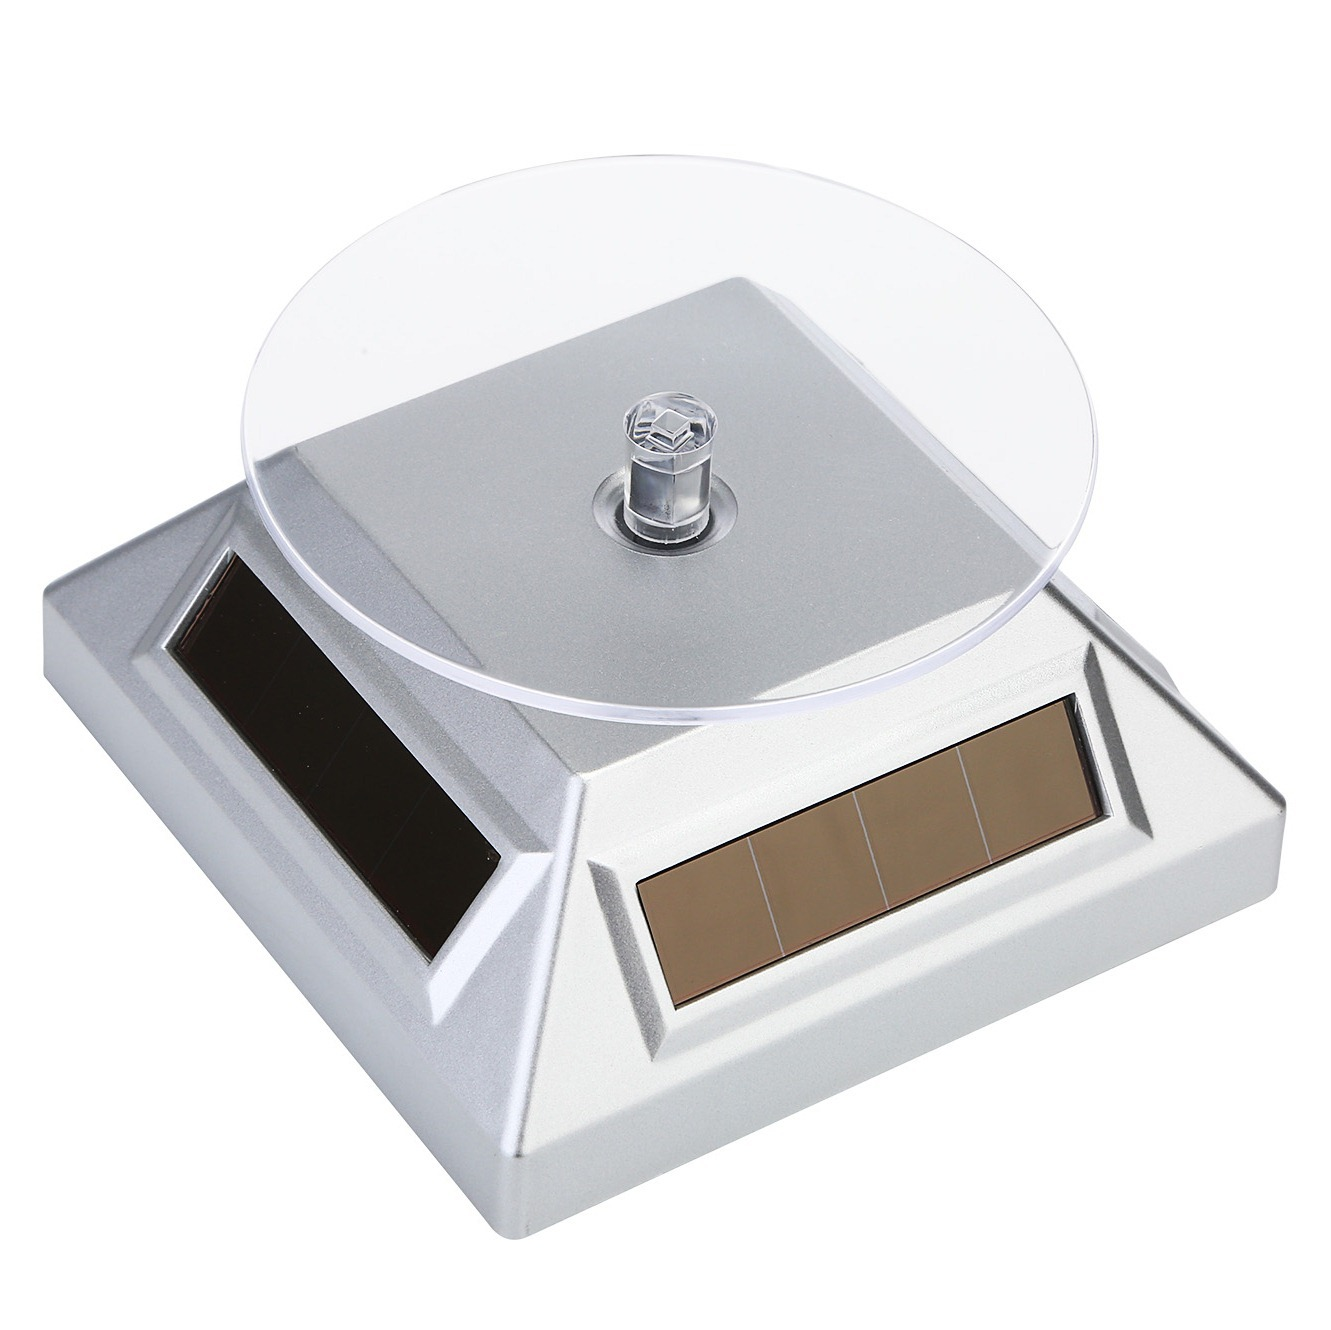 Solar Rotating Turntable Dual-Use Display Stand Jewelry Jade Jewelry Showing Stand Small Commodity Base